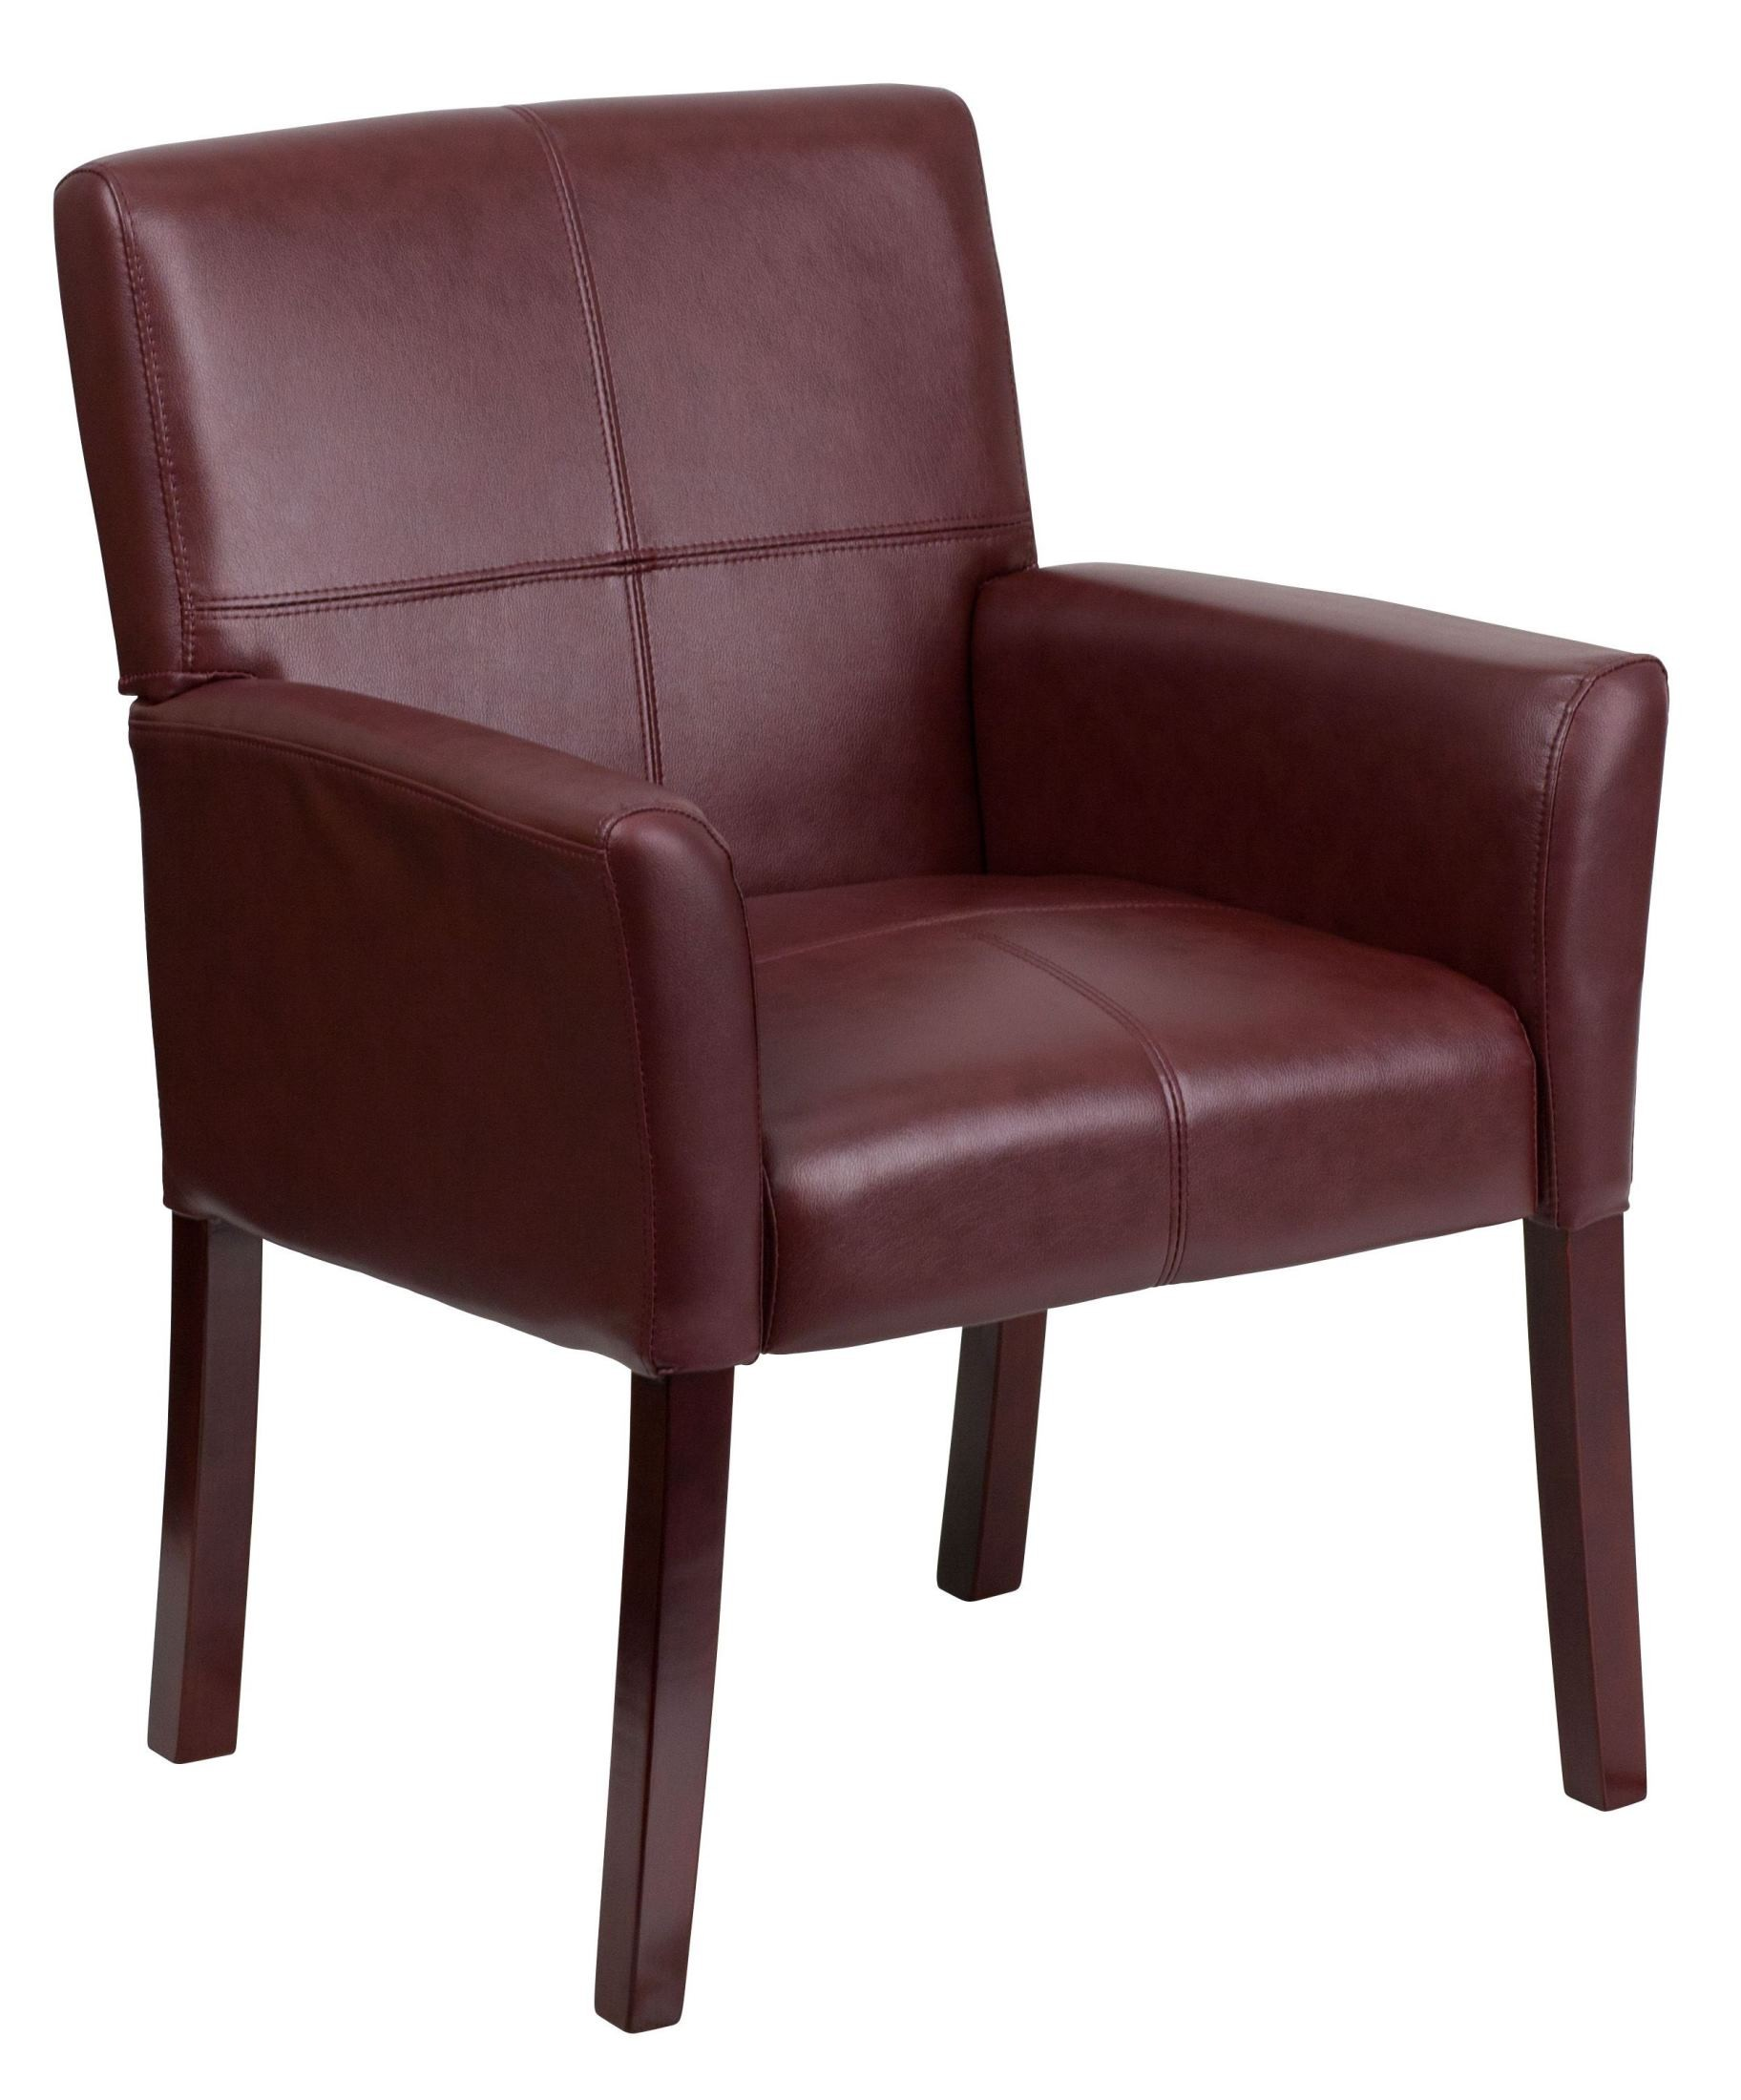 Executive Side Chair Burgundy From Renegade Coleman